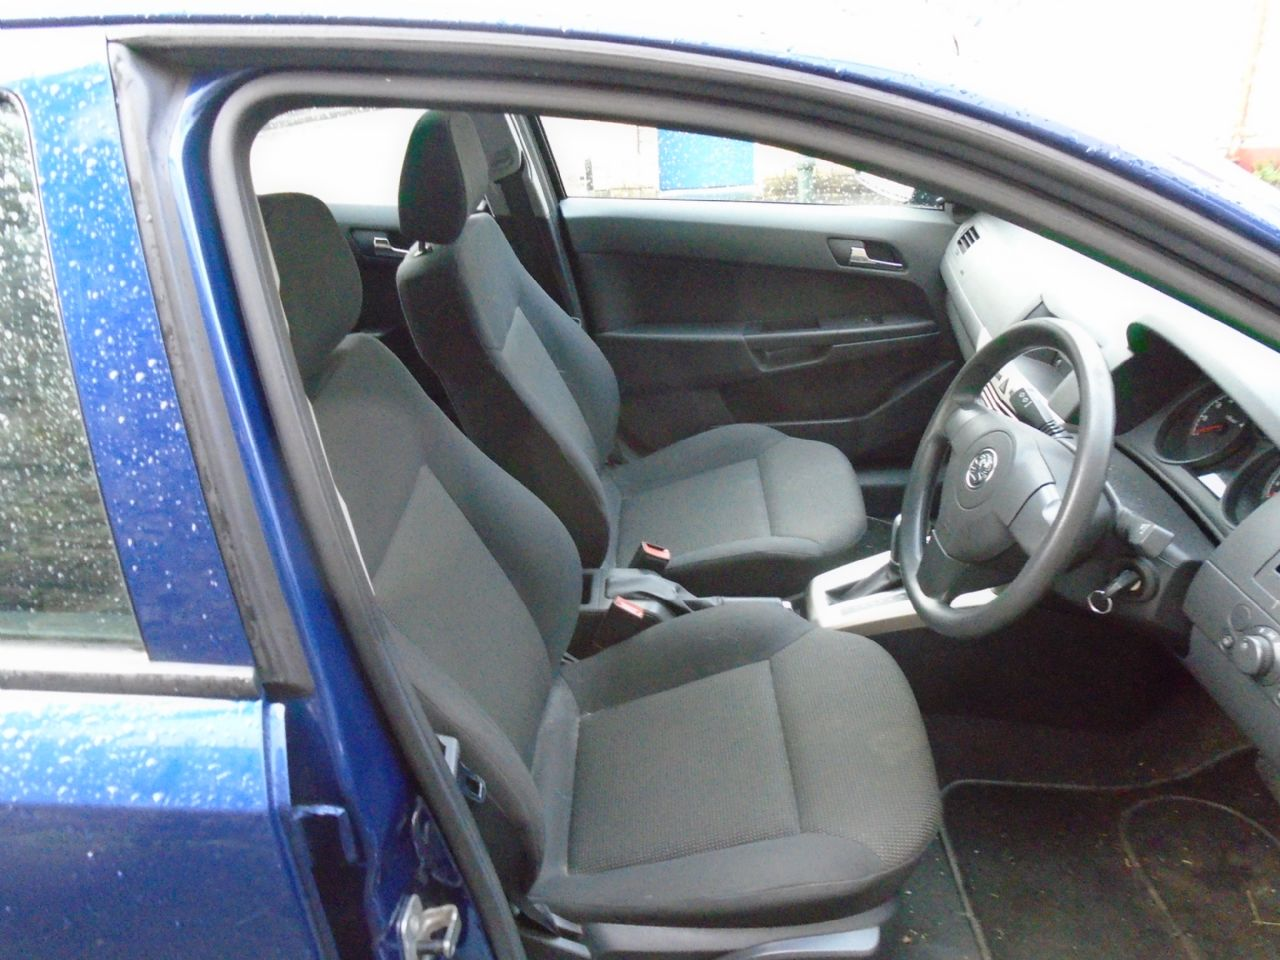 VAUXHALL Astra Life 1.8i 16v auto (a/c) VIP - Picture 2